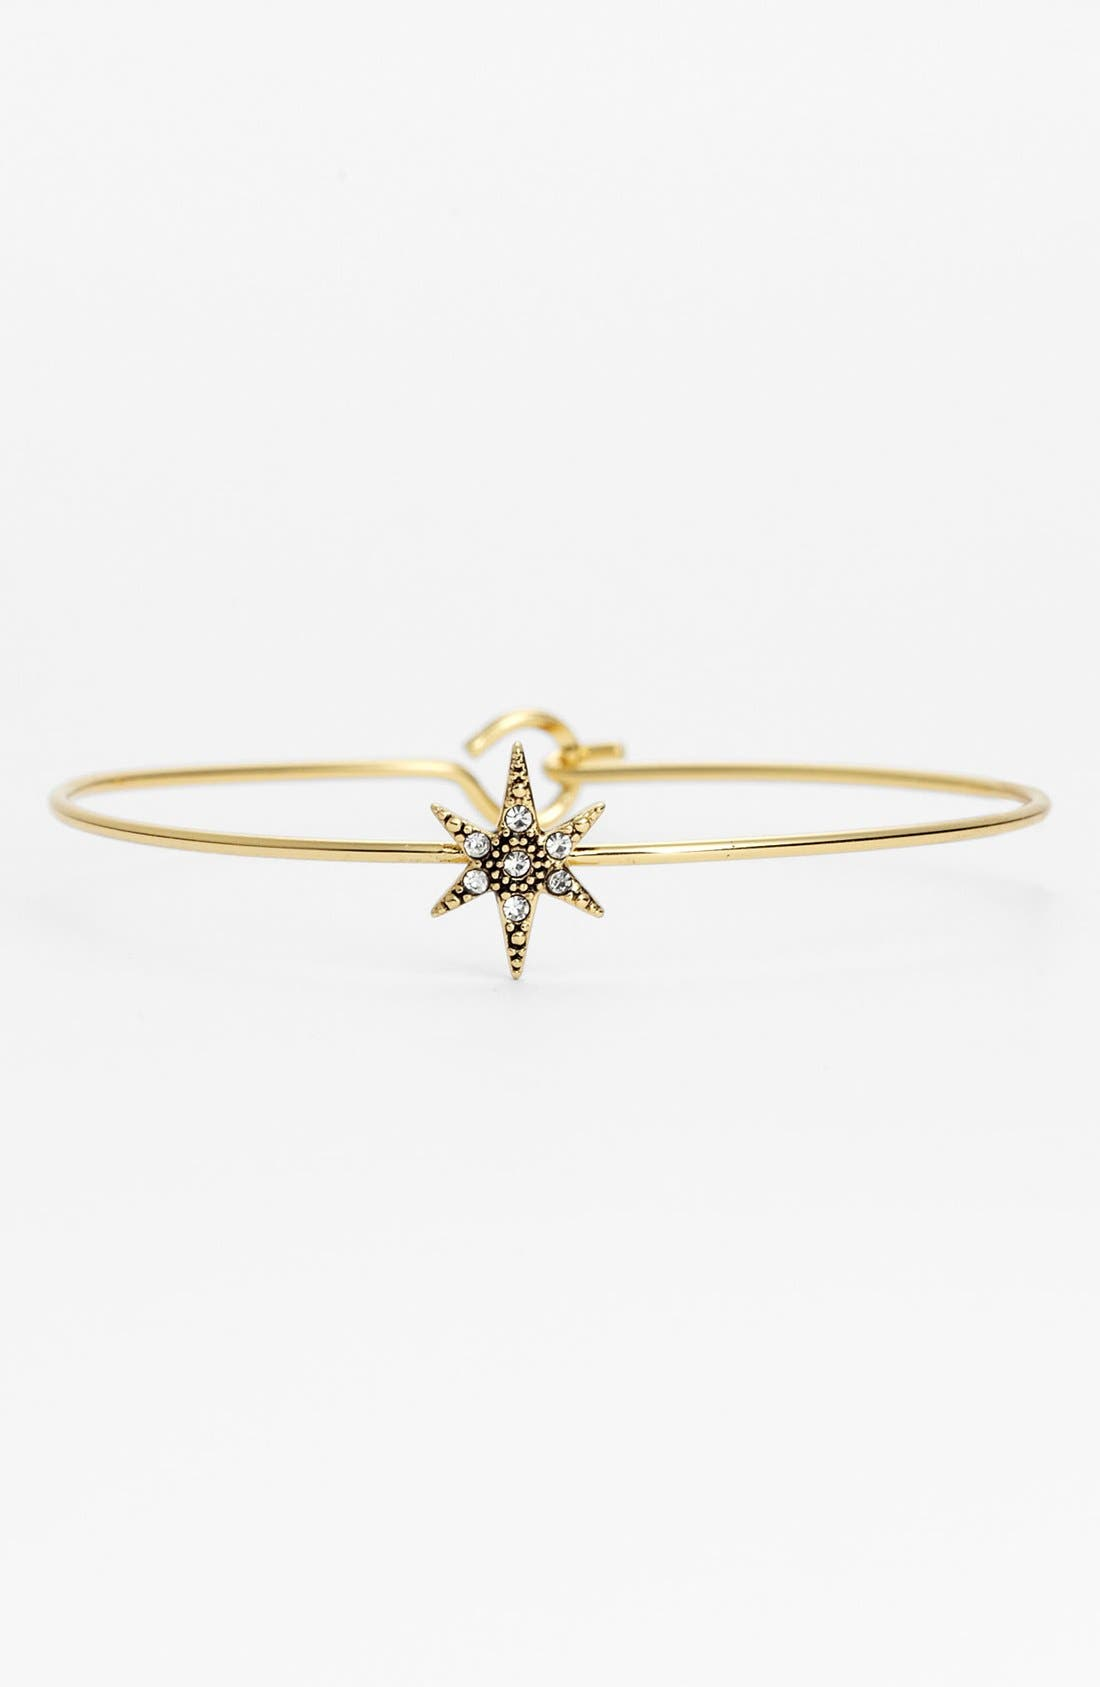 Alternate Image 1 Selected - Ariella Collection Star Station Bangle Bracelet (Nordstrom Exclusive)